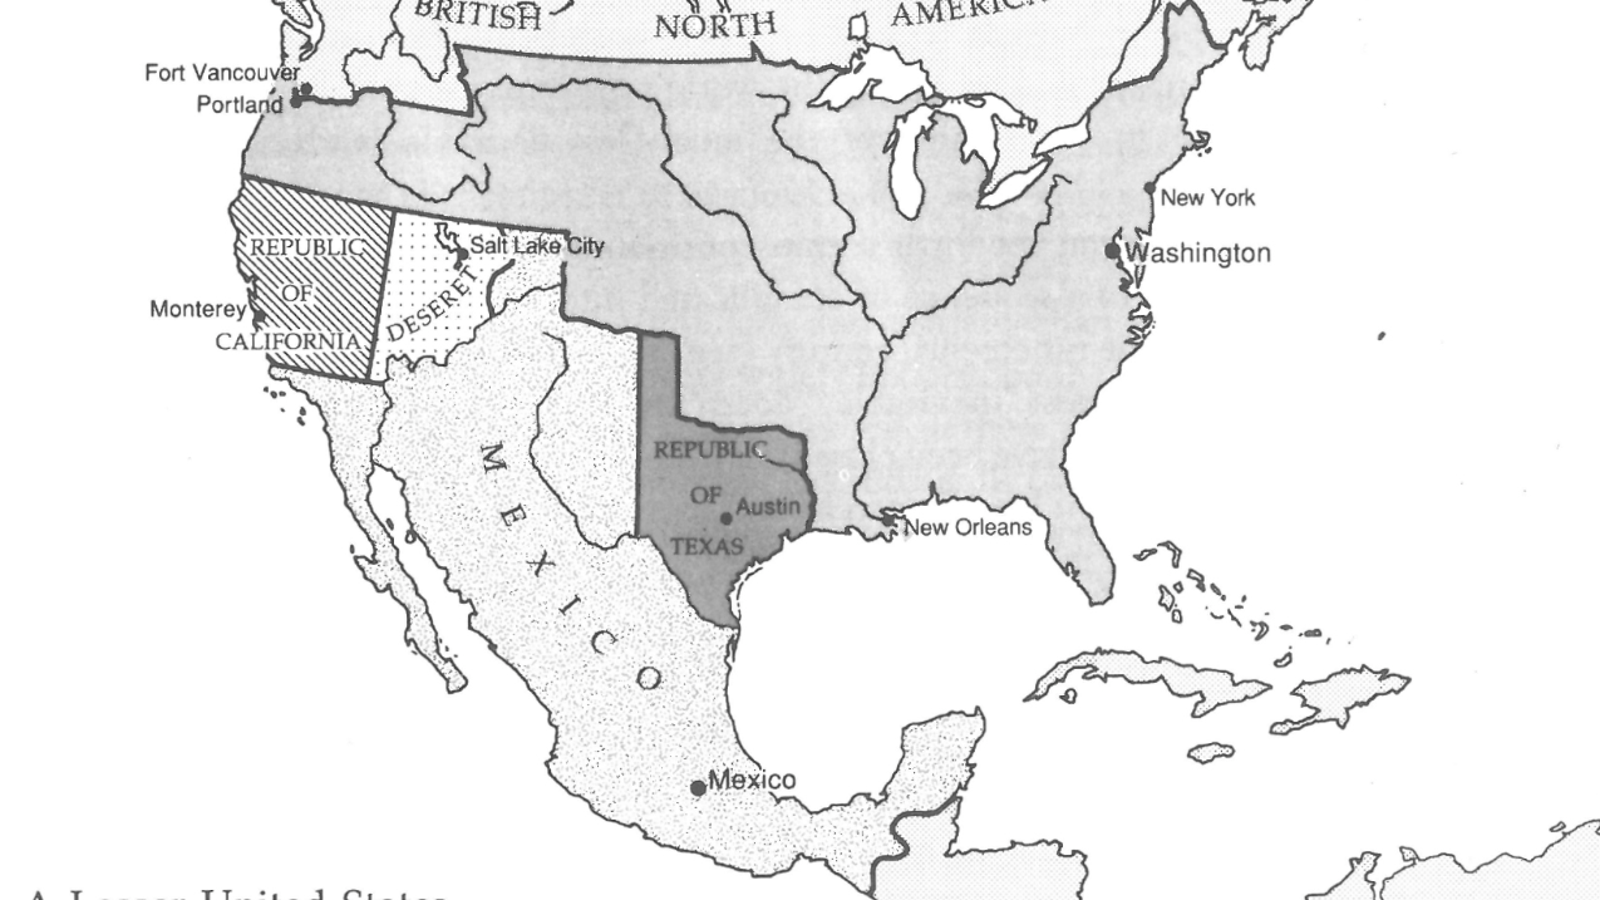 A Map Of The U.S., If There Had Never Been A Mexican-American War